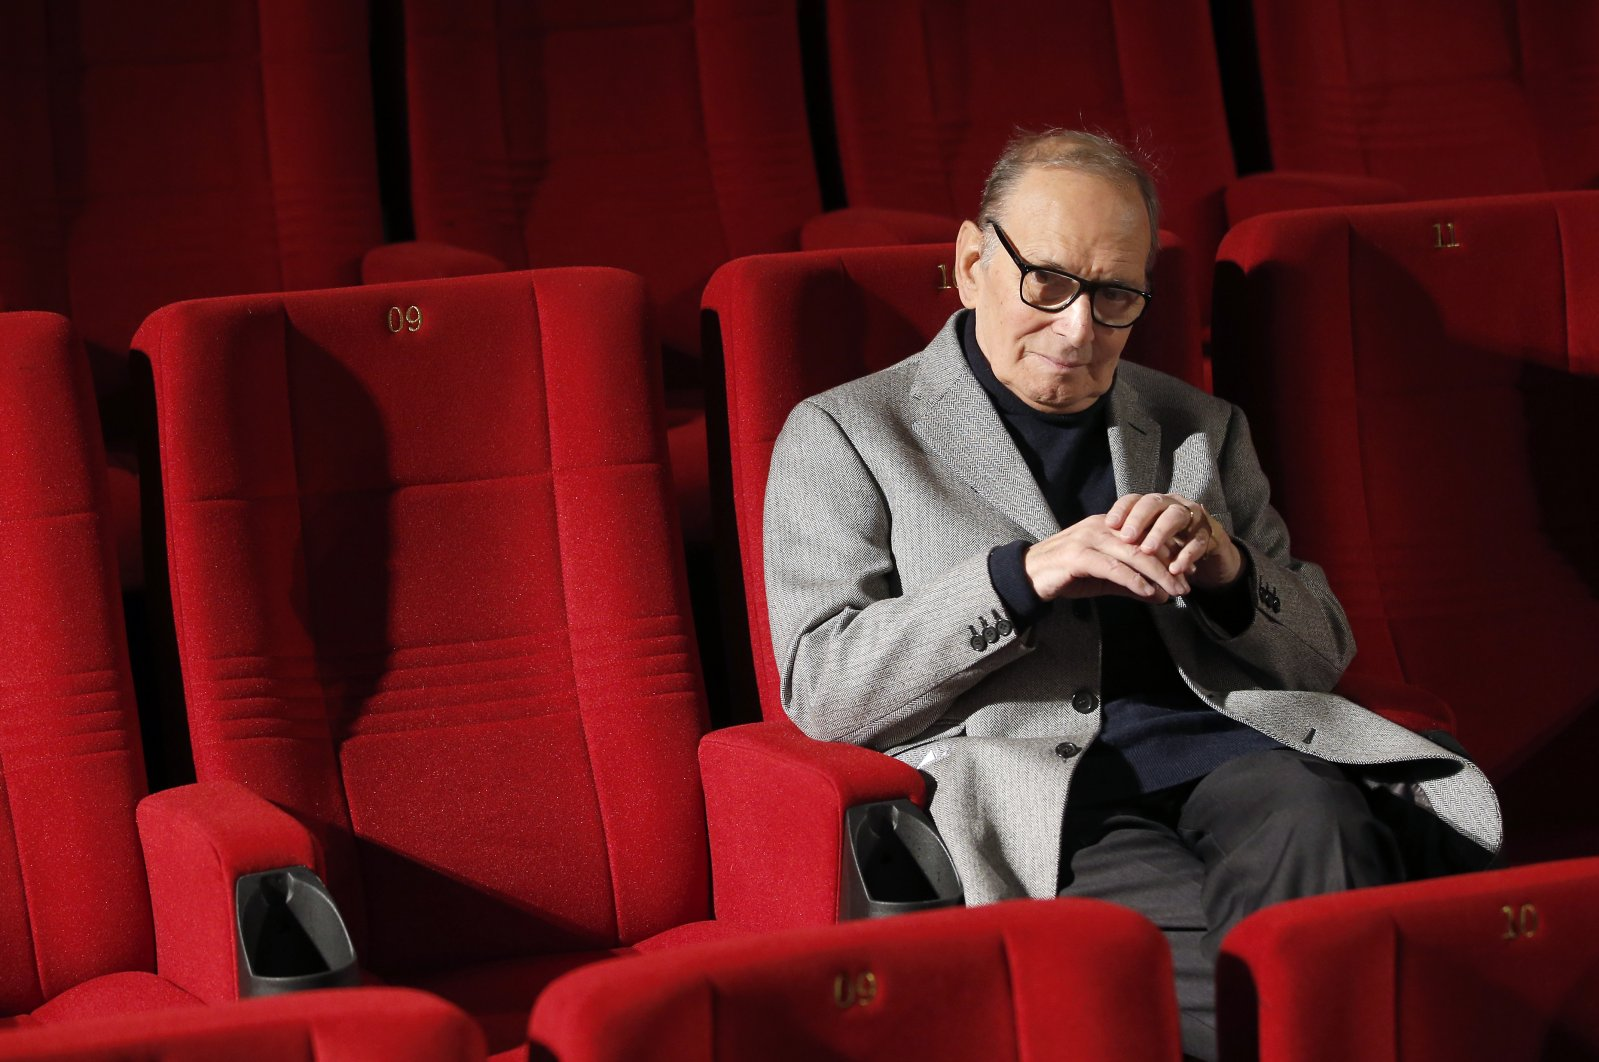 Italian composer Ennio Morricone poses during a photo call to promote his German 2014 concerts, in Berlin, Germany, Dec. 6, 2013. (AP Photo)